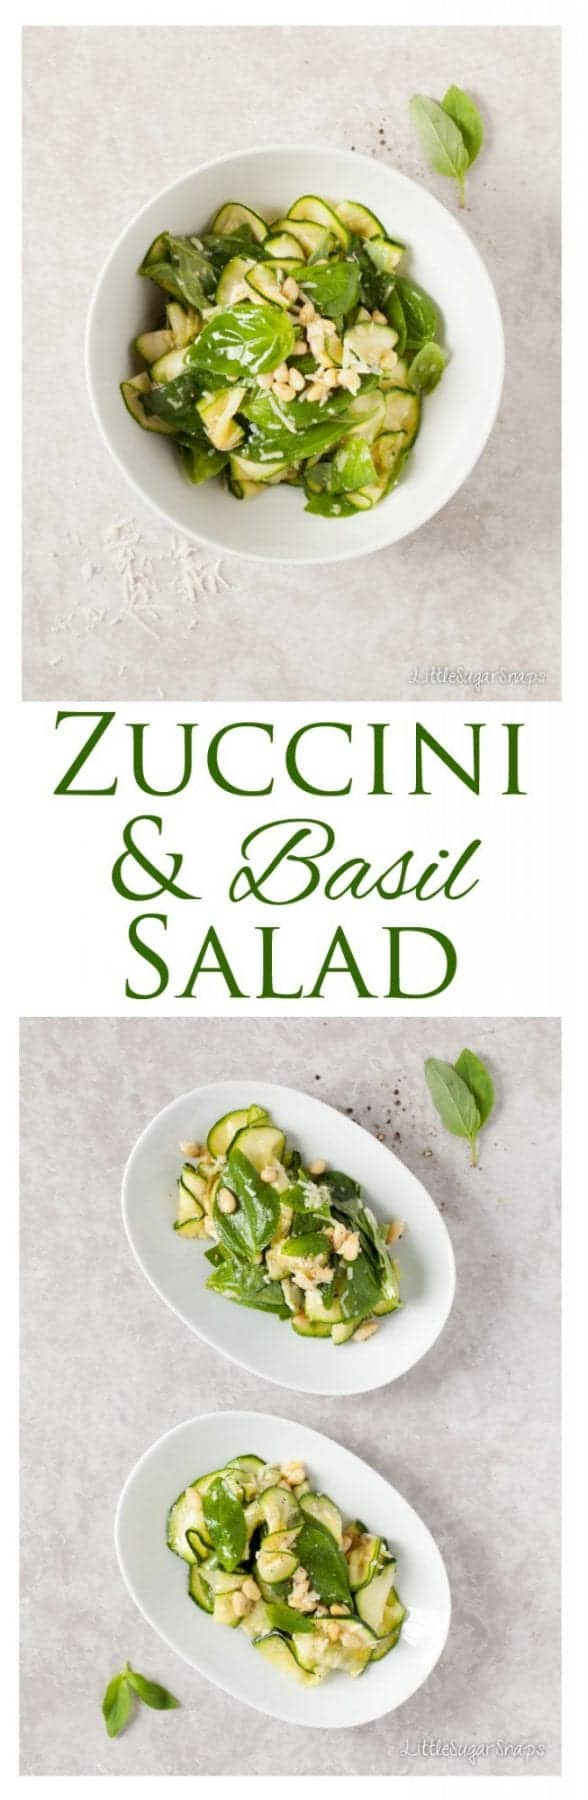 Zucchini Basil Salad is bright, flavourful, quick & simple to make and incredibly versatile. With flavours reminiscent of pesto it is good enough to serve alongside steak, chicken or fish, but equally good on a table of mixed small plates.